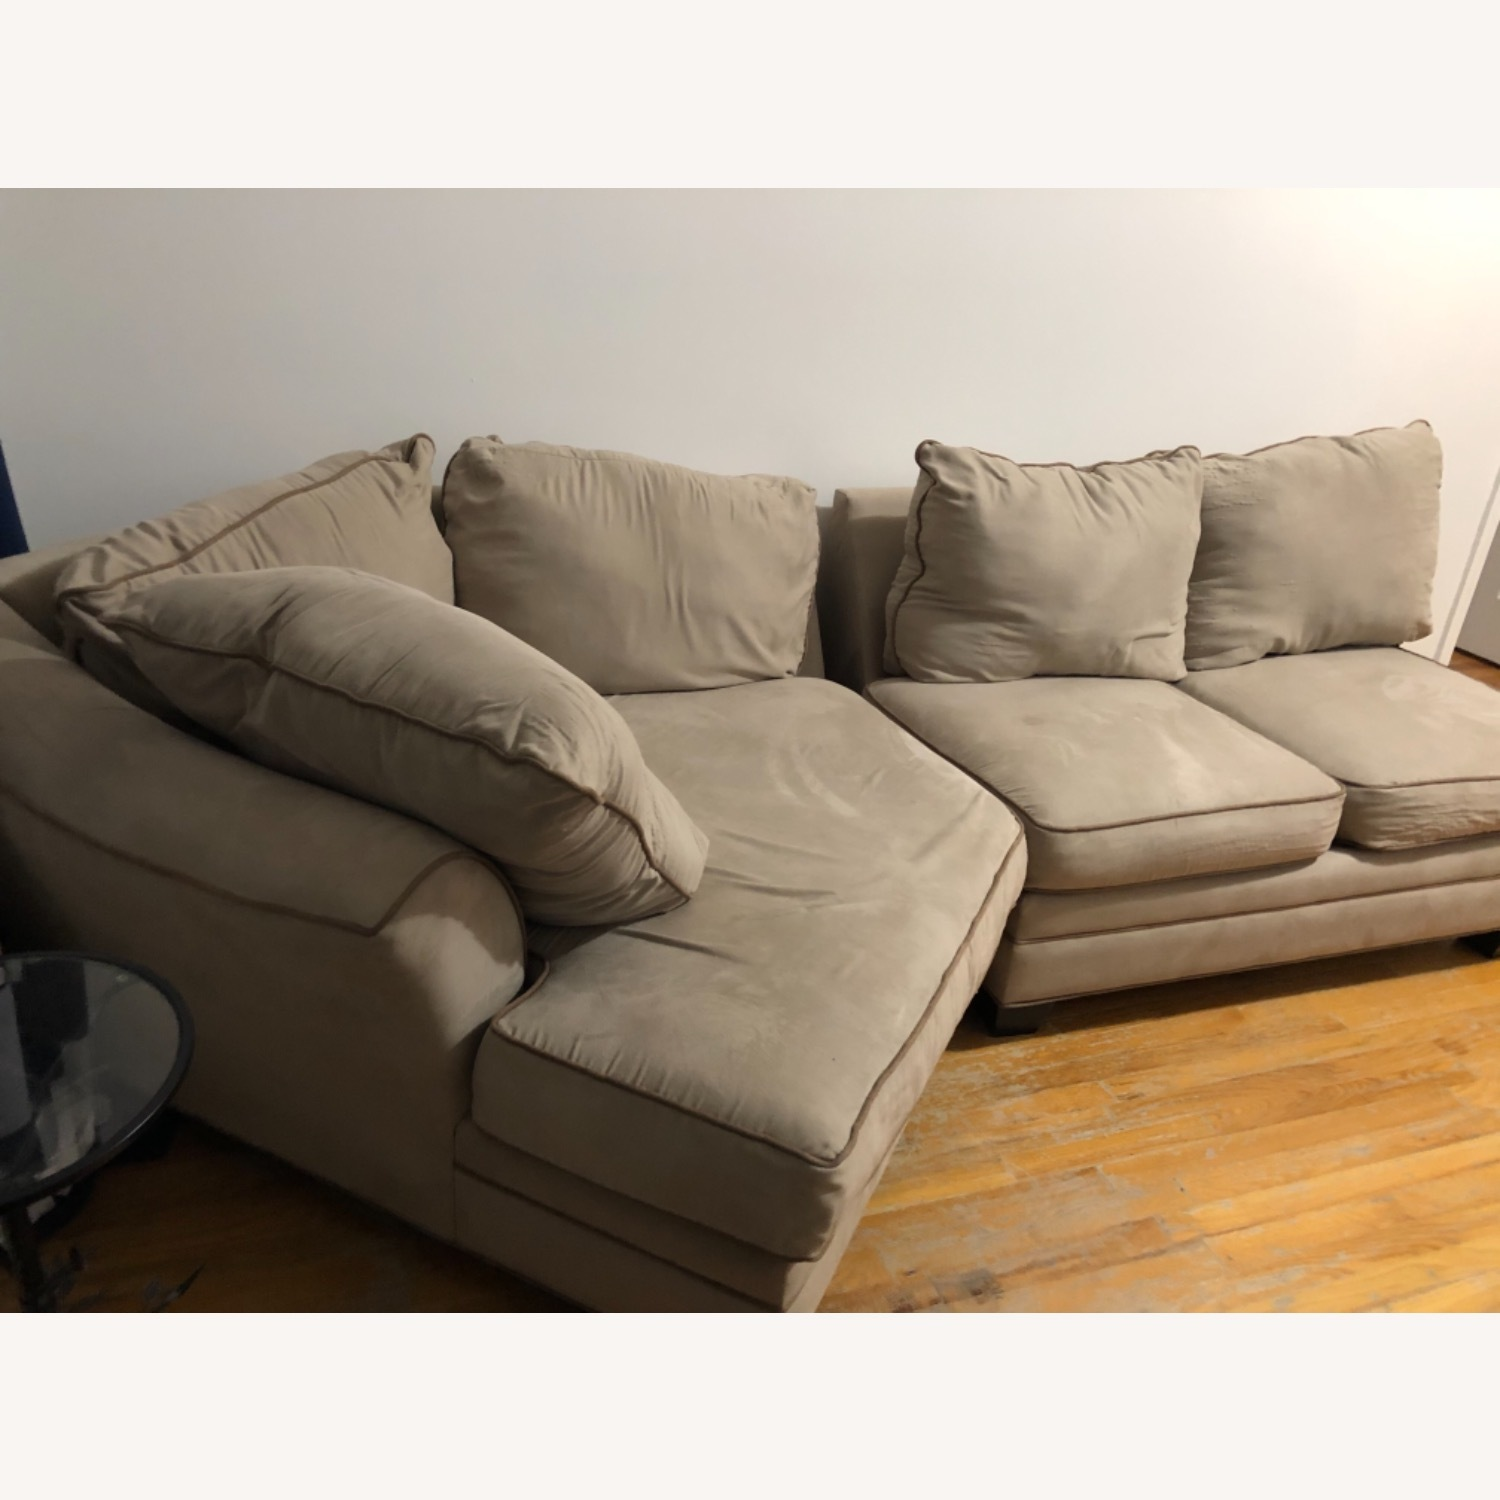 Raymour & Flanigan Foresthill 2 Piece Sectional Sofa - image-4